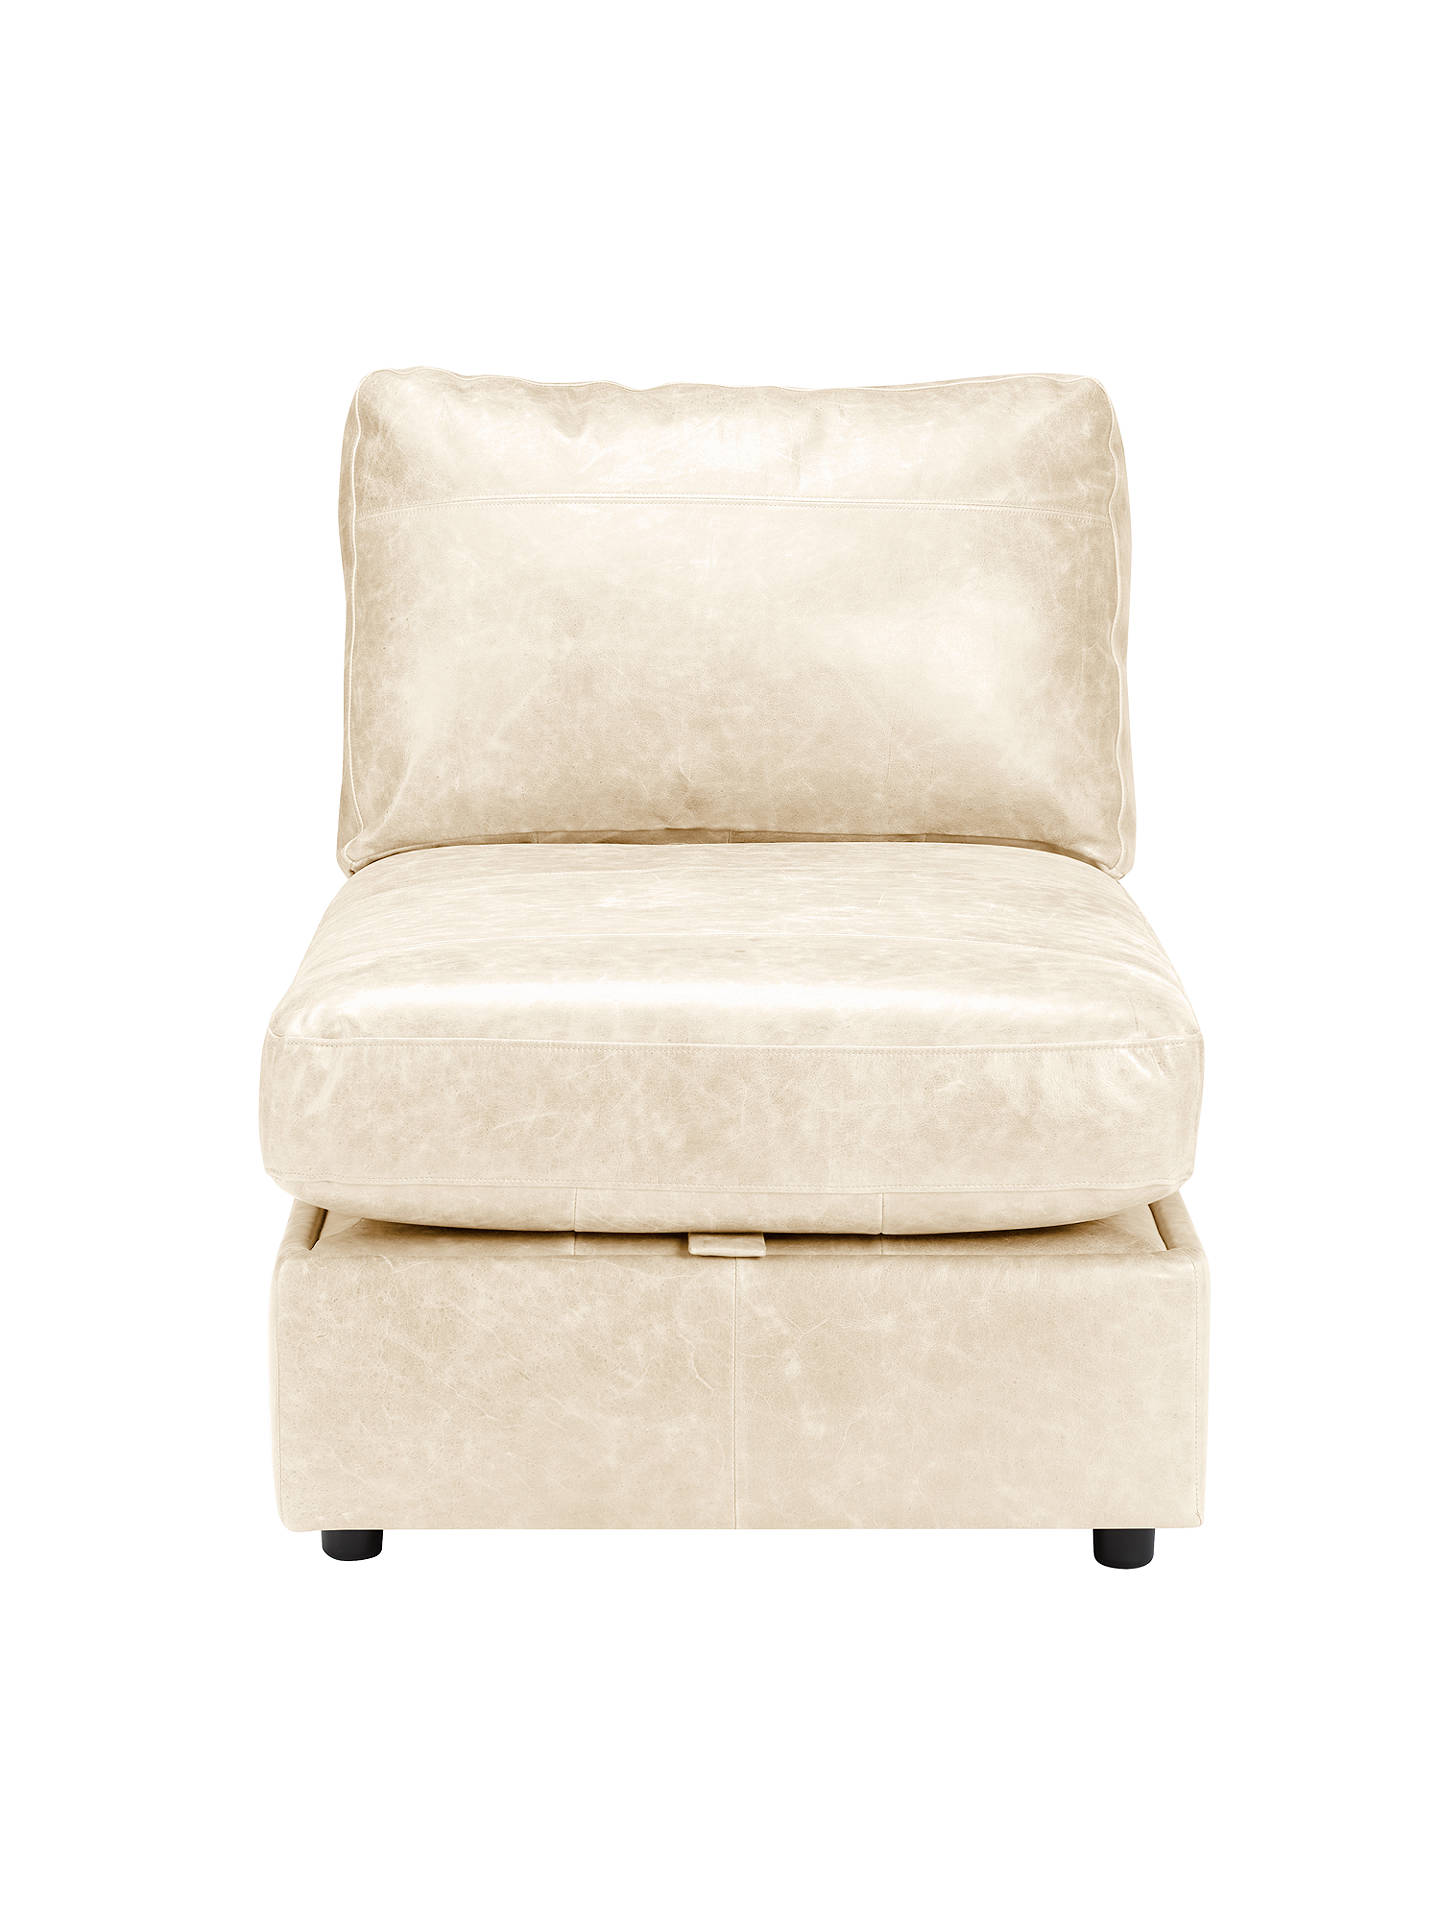 Buy House by John Lewis Oliver Leather Modular Storage Chaise Unit, Dark Leg, Contempo Ivory Online at johnlewis.com